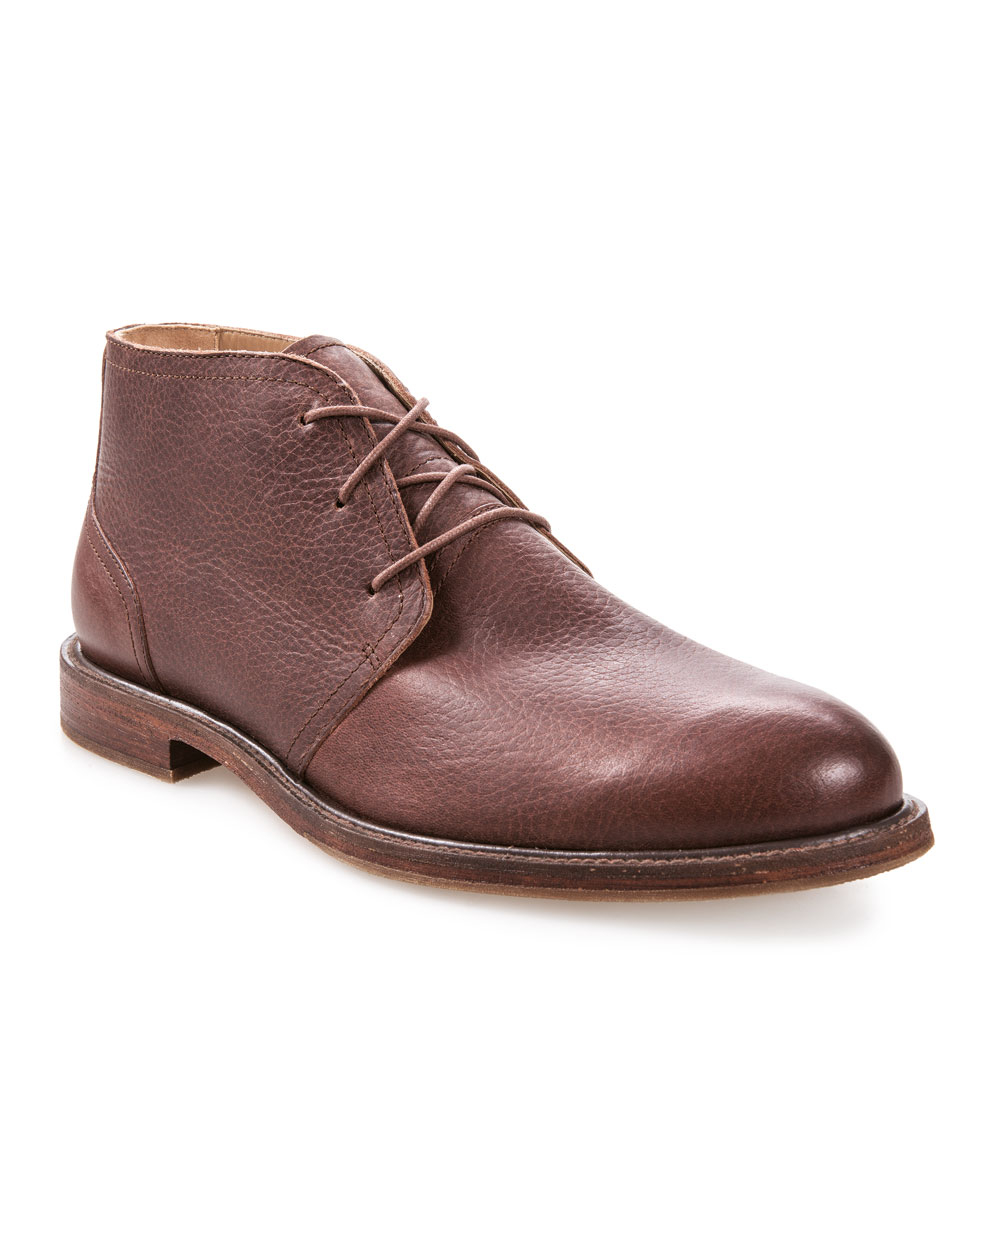 J Shoes Monarch Plus Leather Chukka (cow leather ambra)